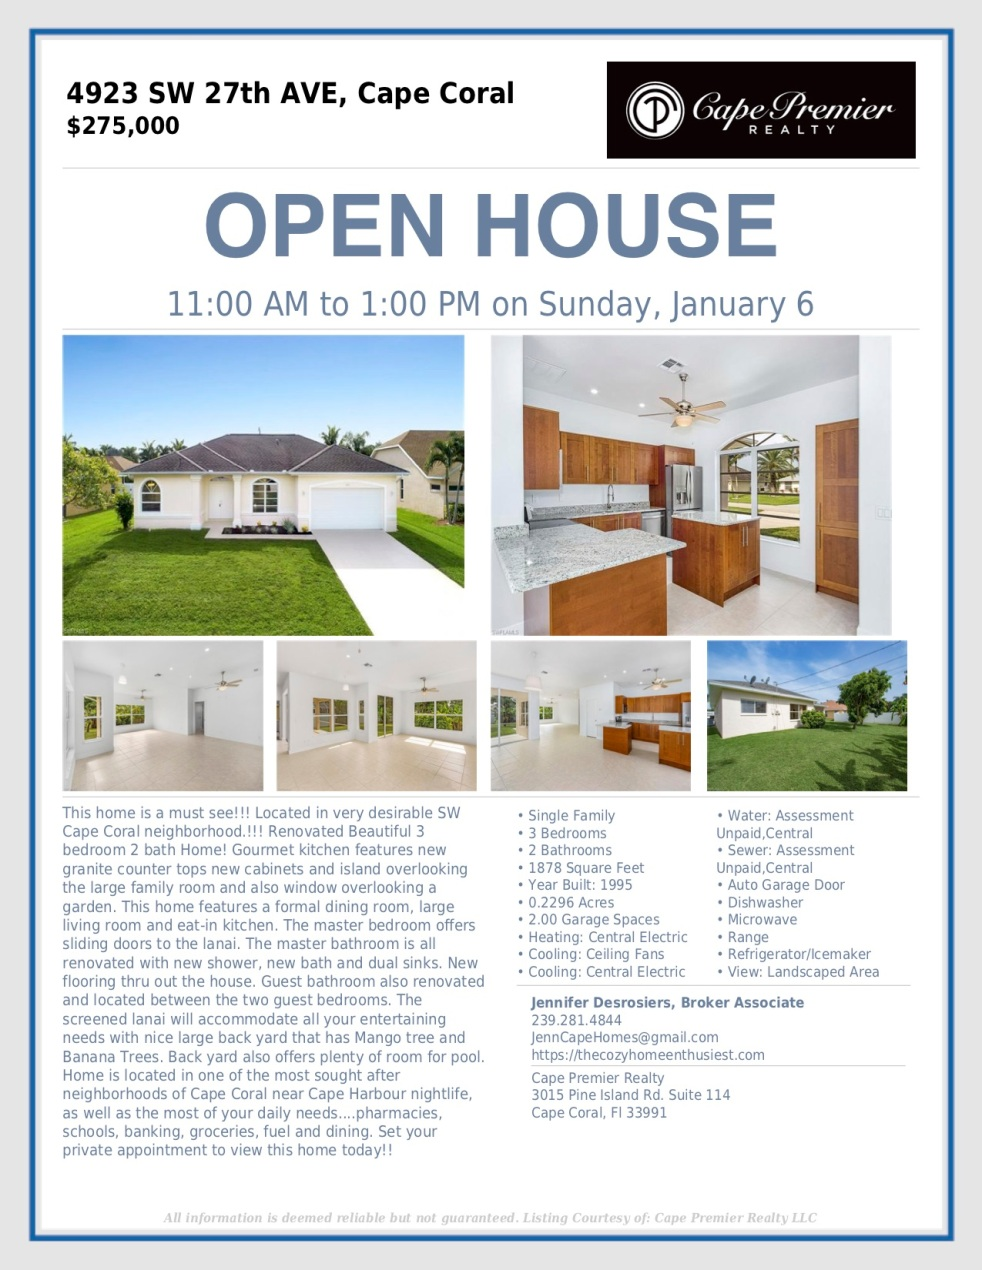 open house sw 27th avve.